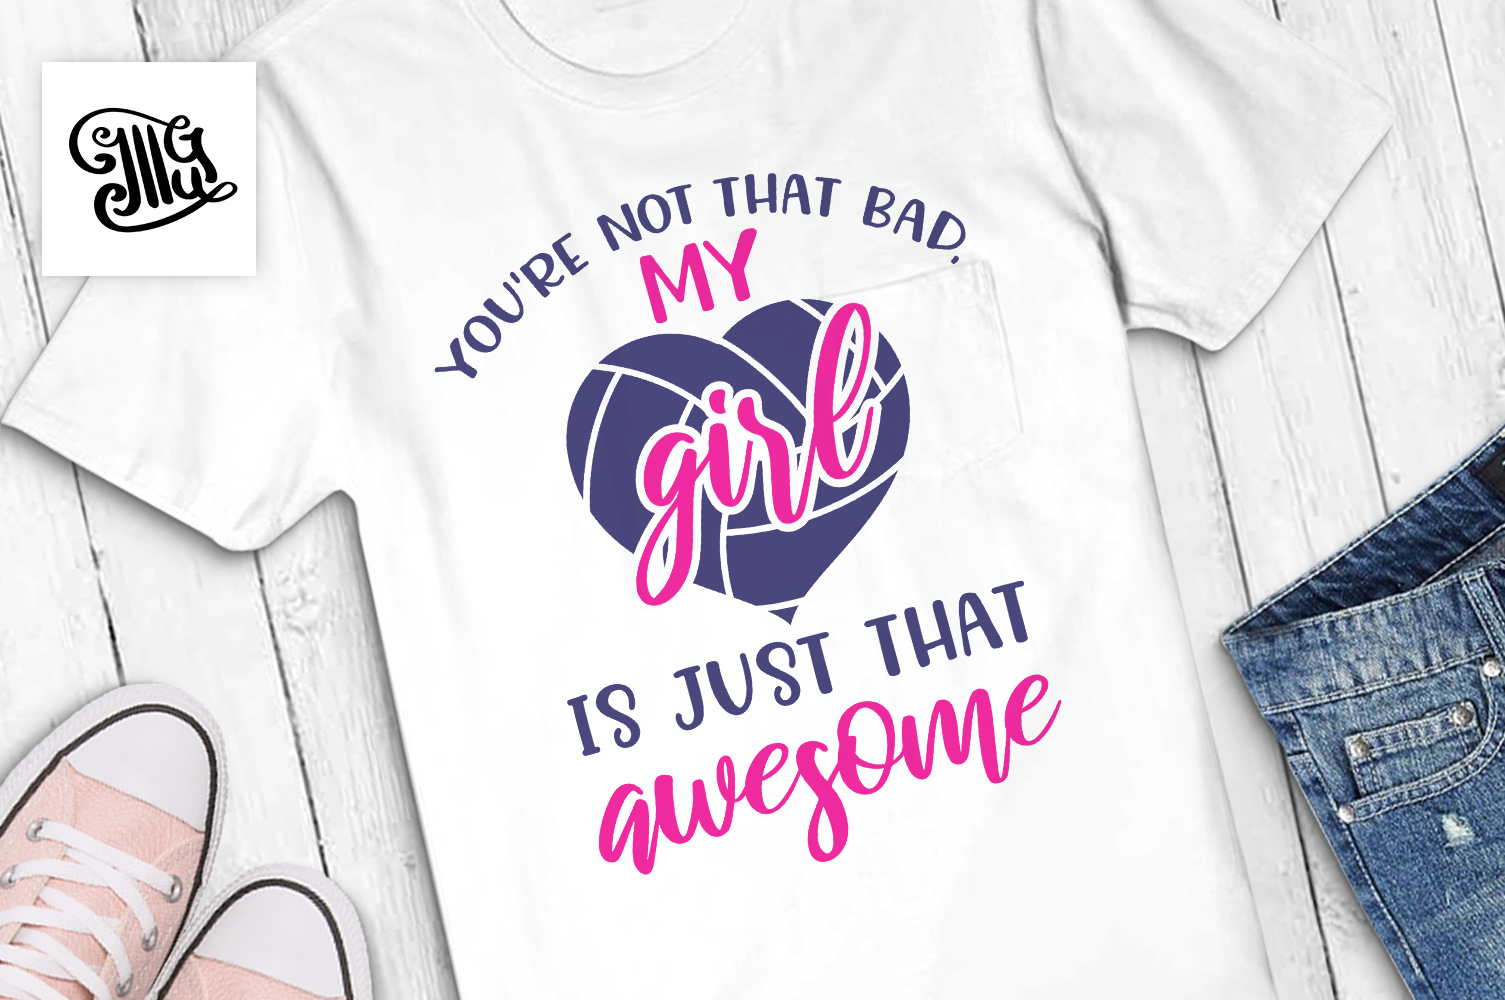 You're not that bad, my girl is just that awesome example image 1